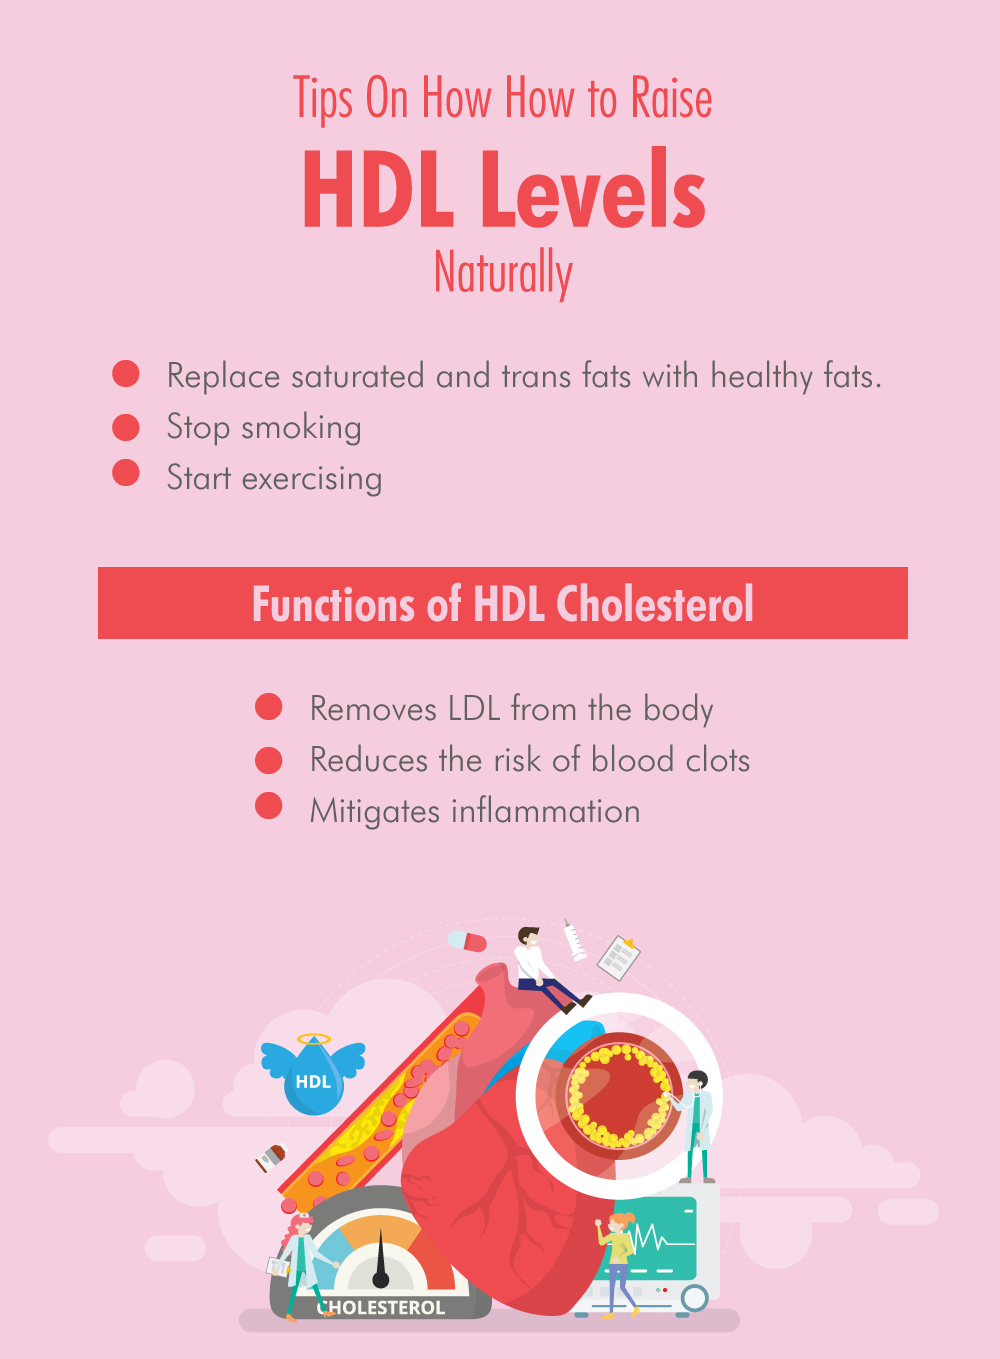 Tips On How How to Raise HDL Levels Naturally